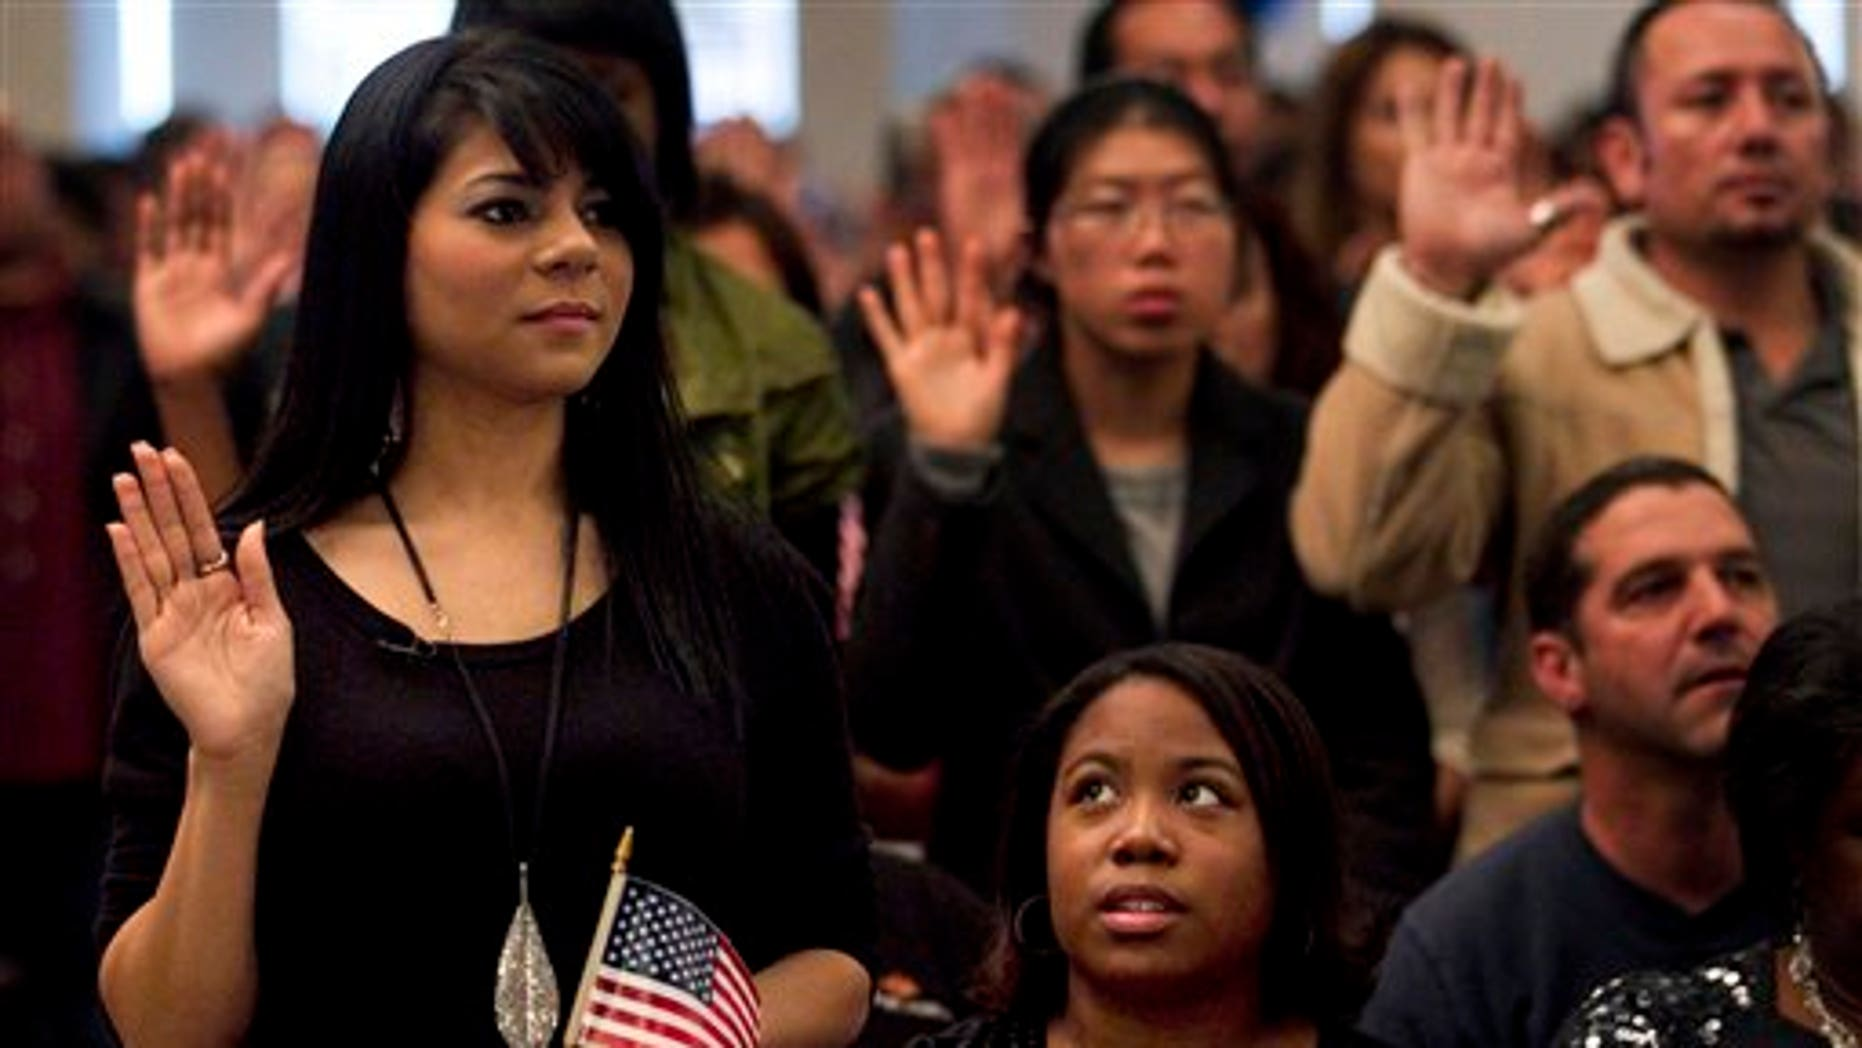 Dec. 15: Shyima Hall, left, takes the oath of citizenship during a citizenship ceremony in Montebello, Calif.